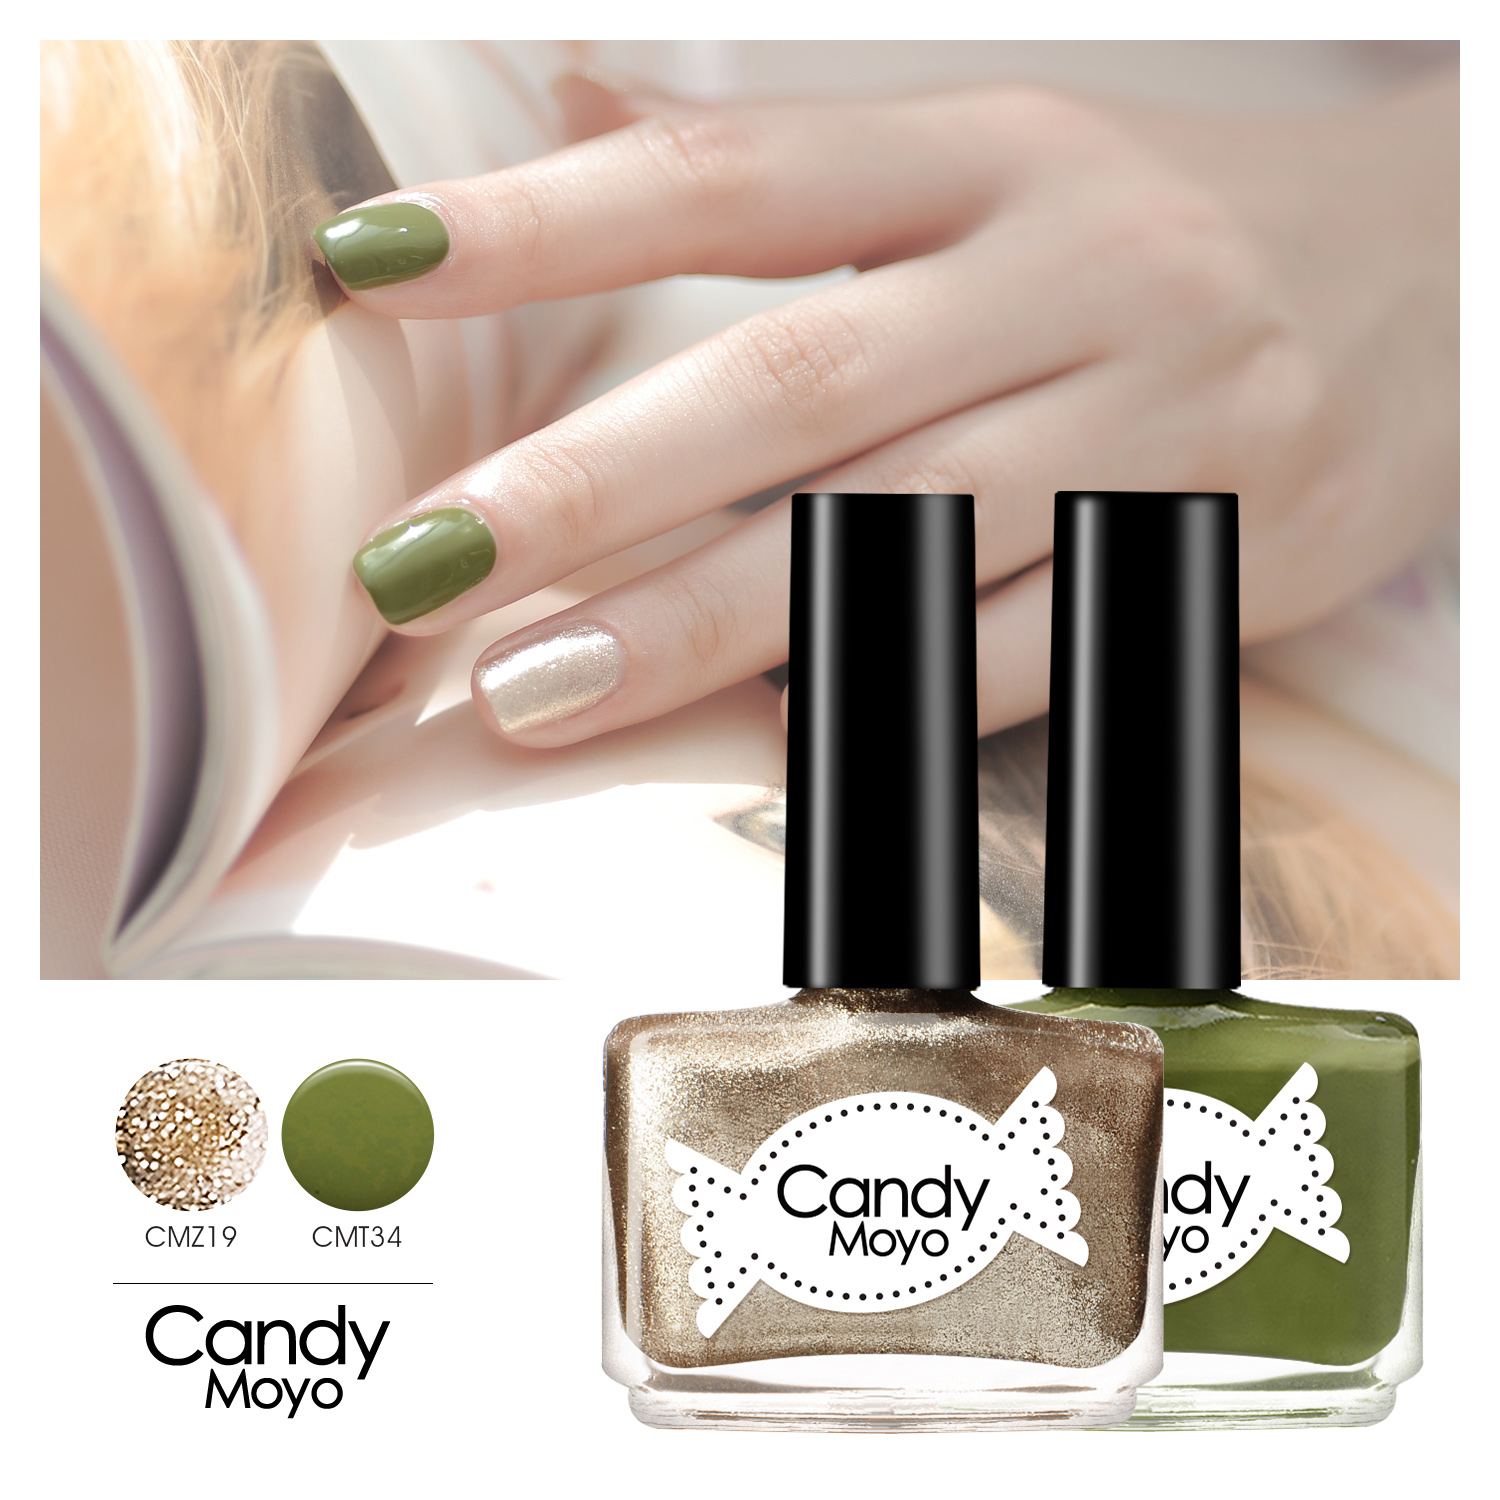 Candy moyo nail polish set candy color metal sequins gradient french manicure genuine environmental durable